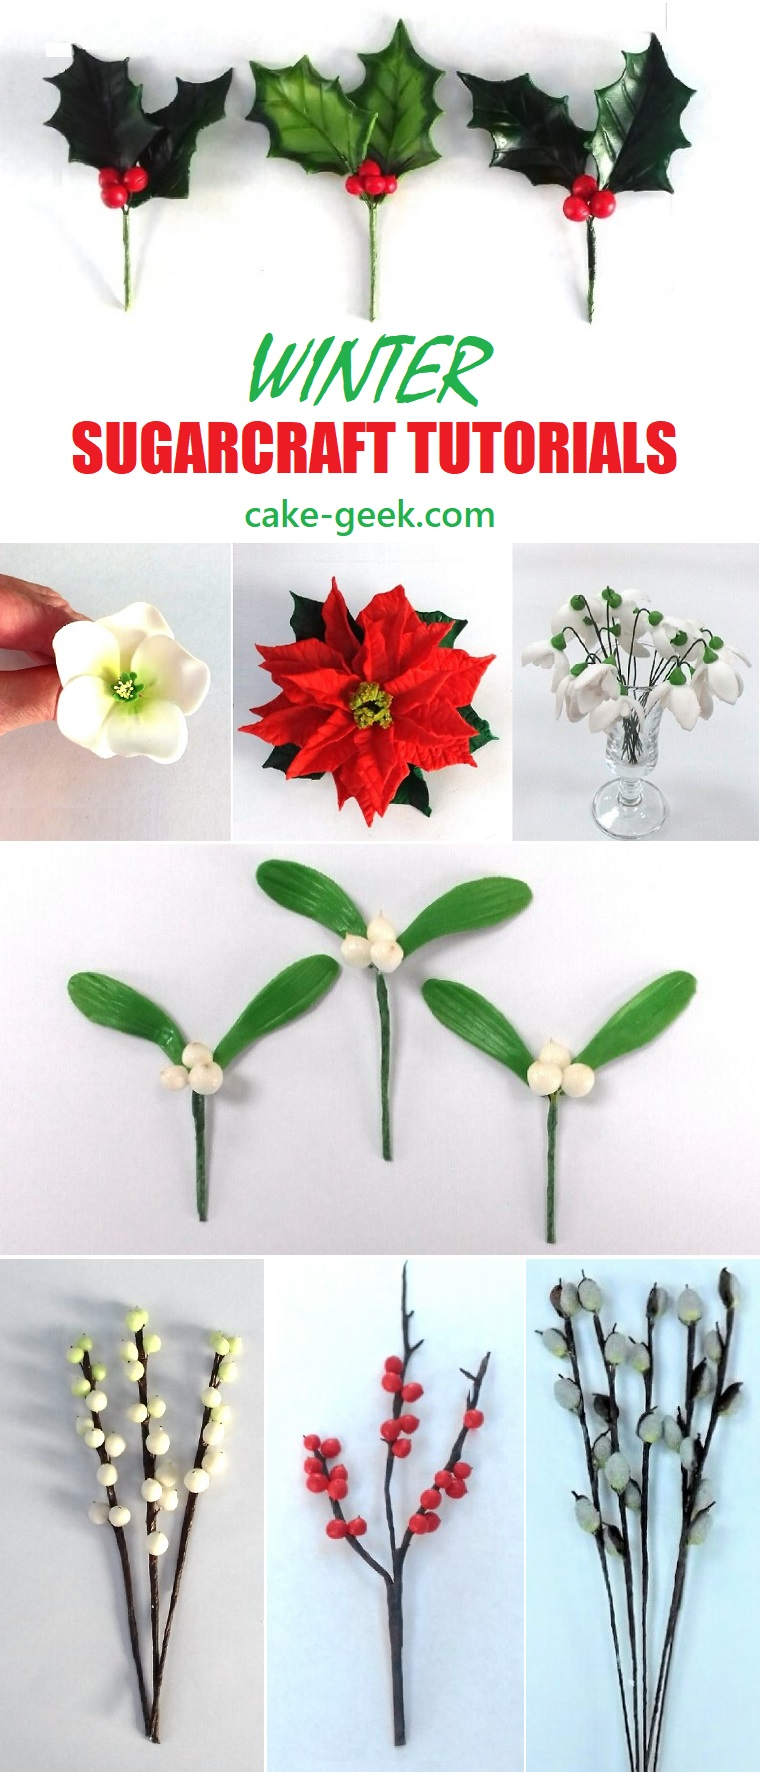 Winter Sugarcraft Tutorials on Cake Geek.com